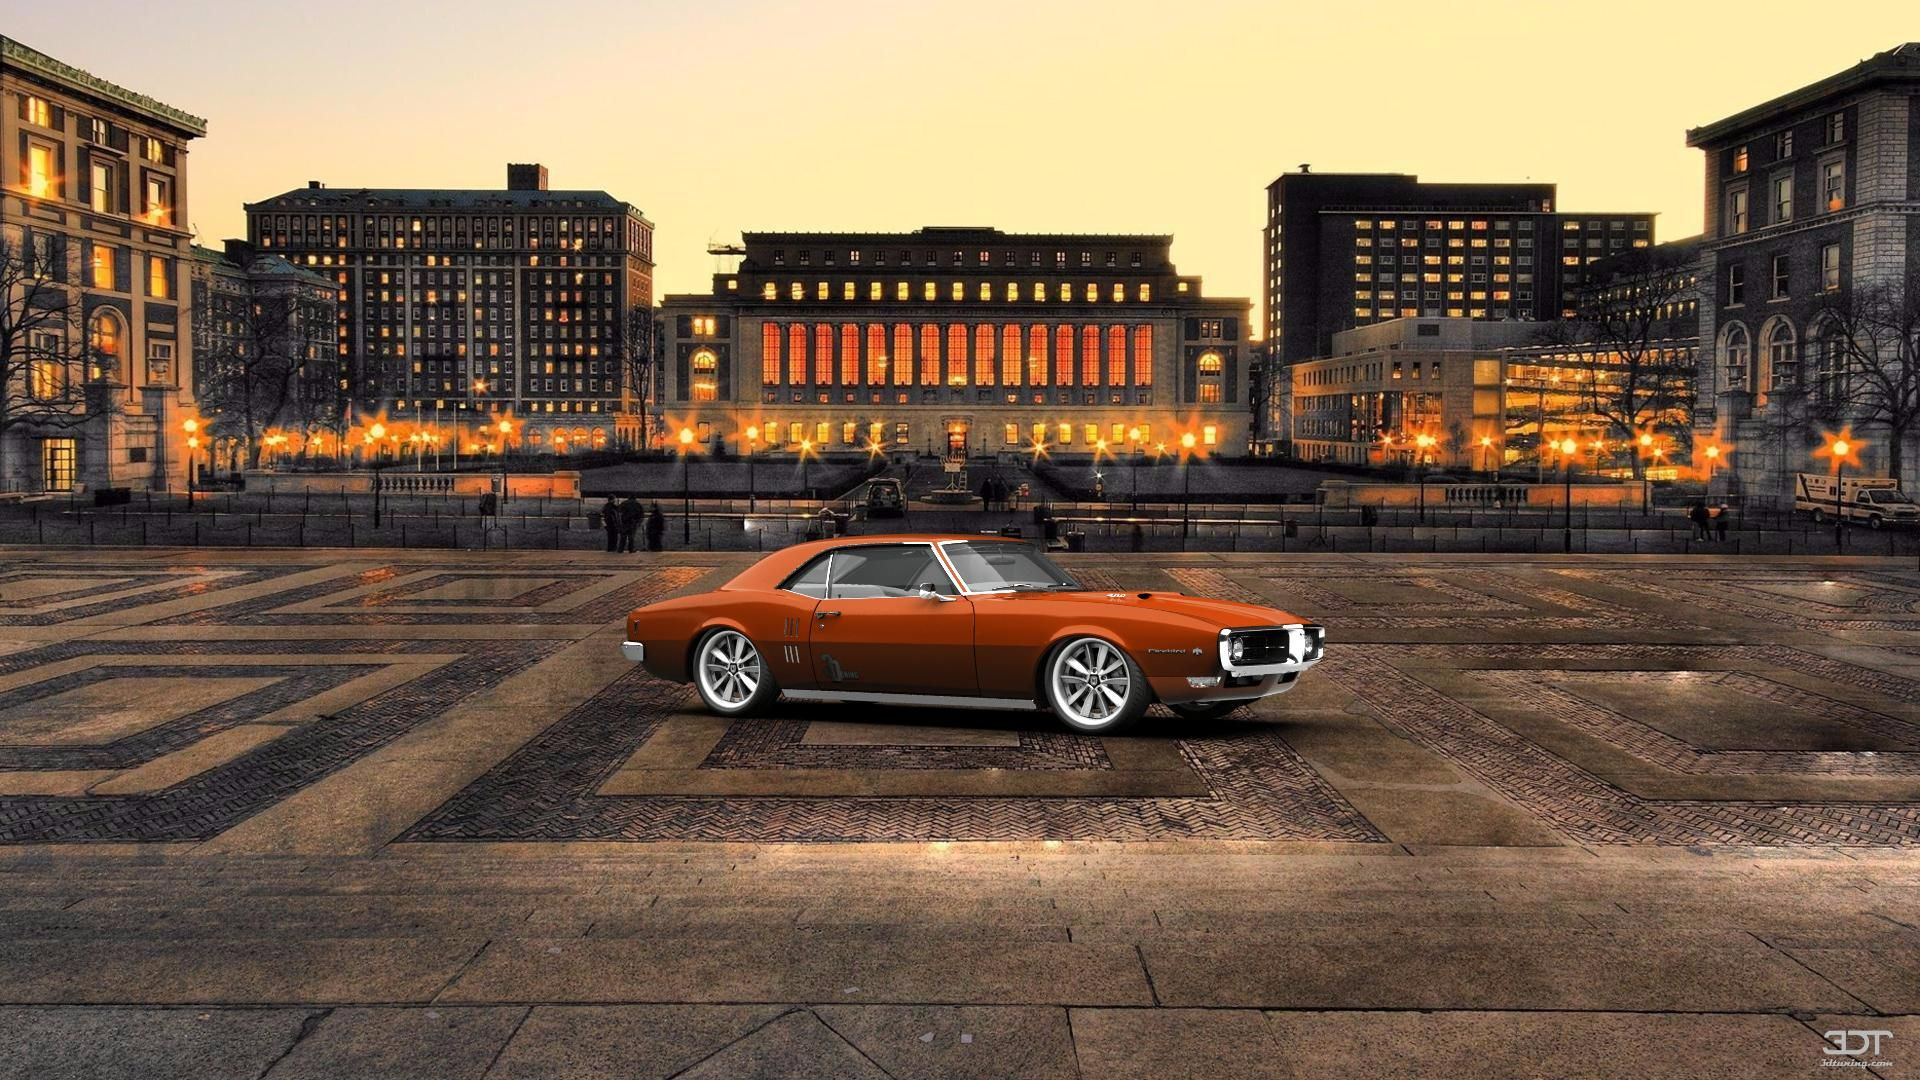 Checkout my tuning Pontiac Firebird 1968 at 3DTuning 3dtuning